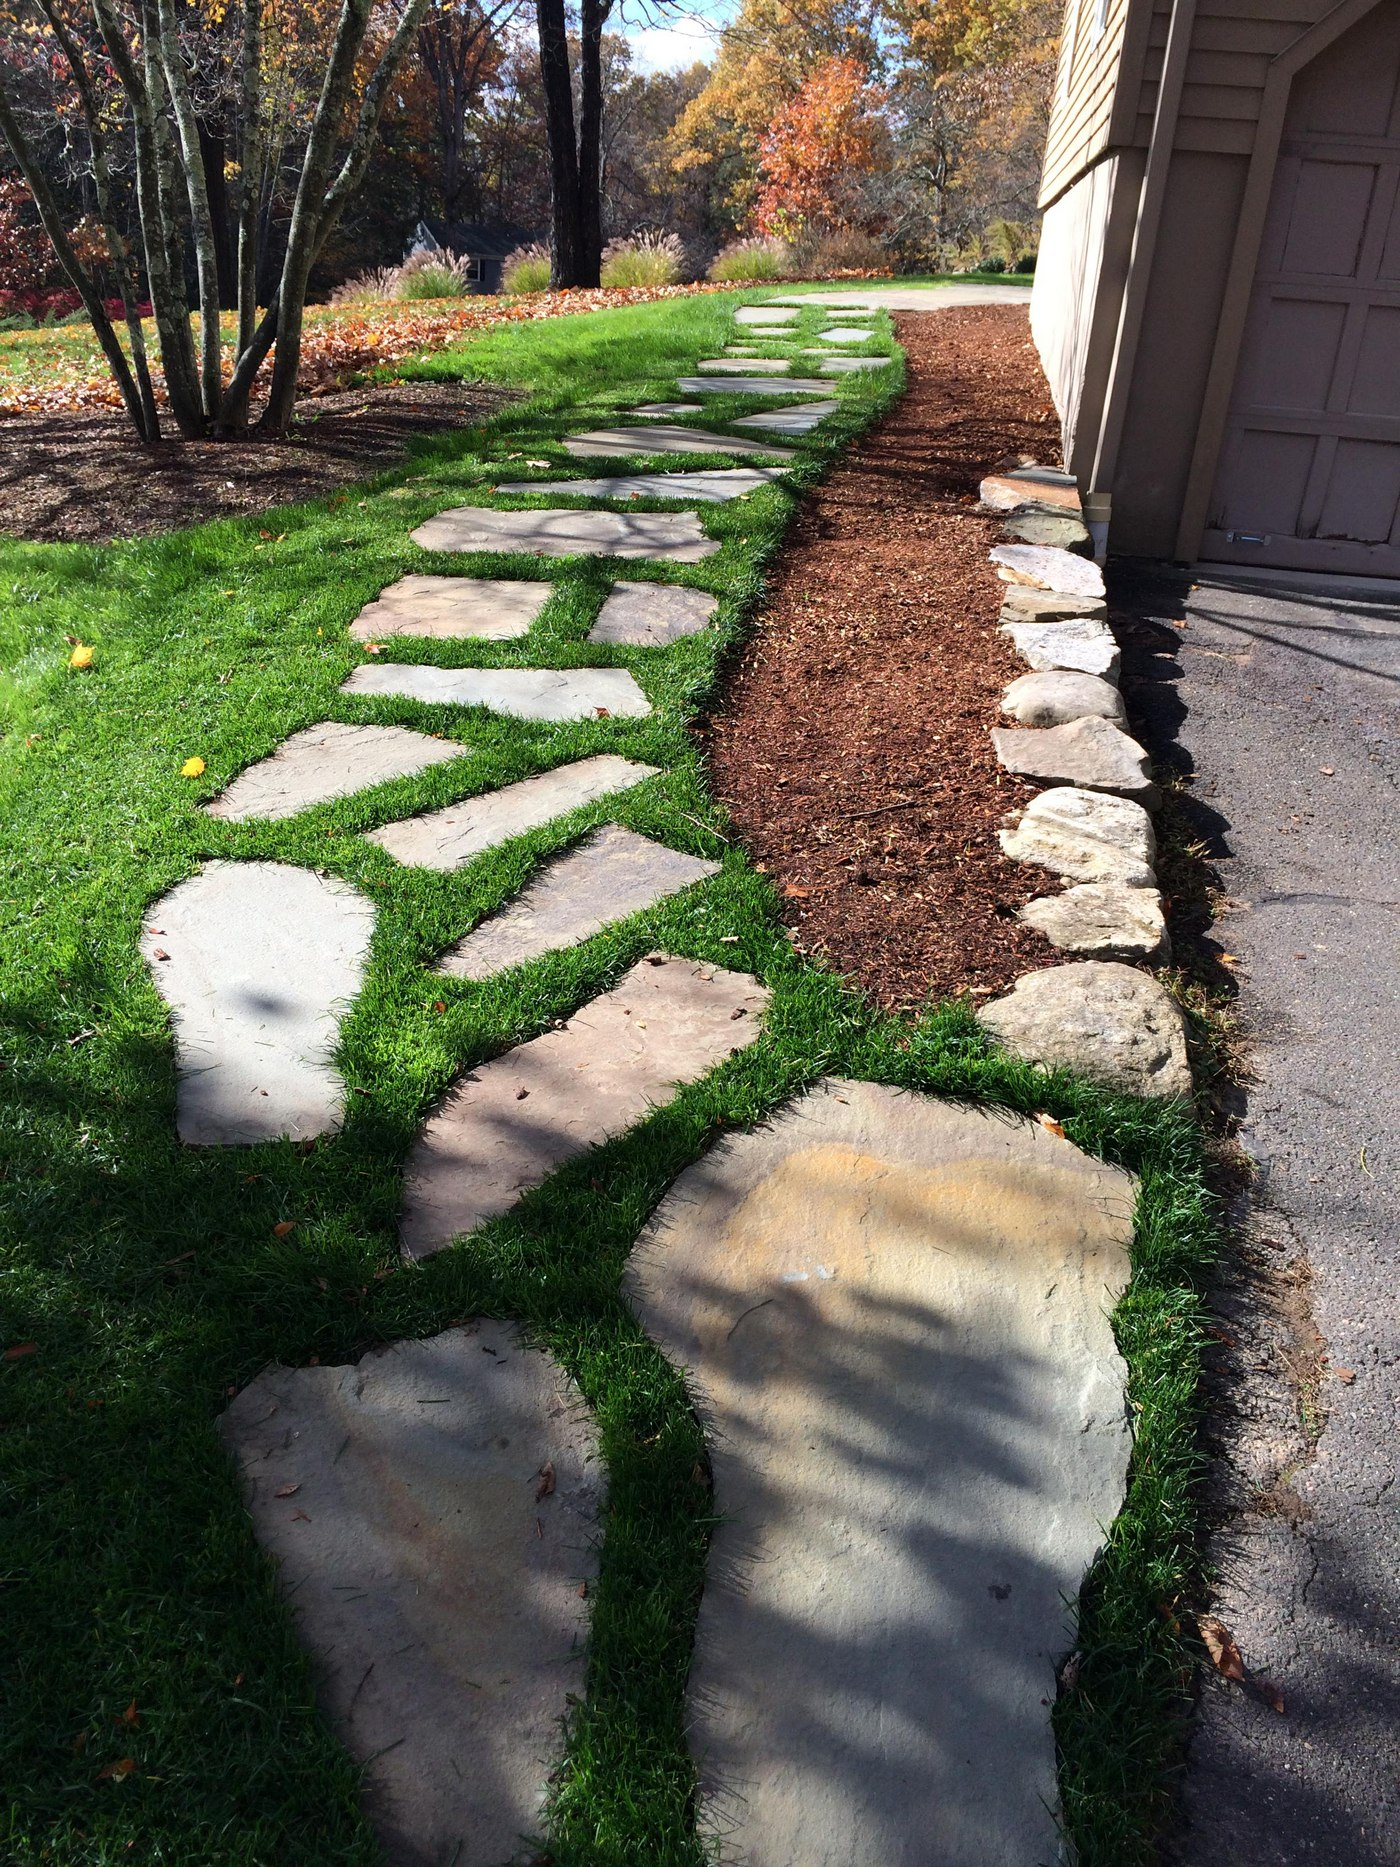 Flagstone Walkway through grass lawn surface by Bahler Brothers in Simsbury, CT